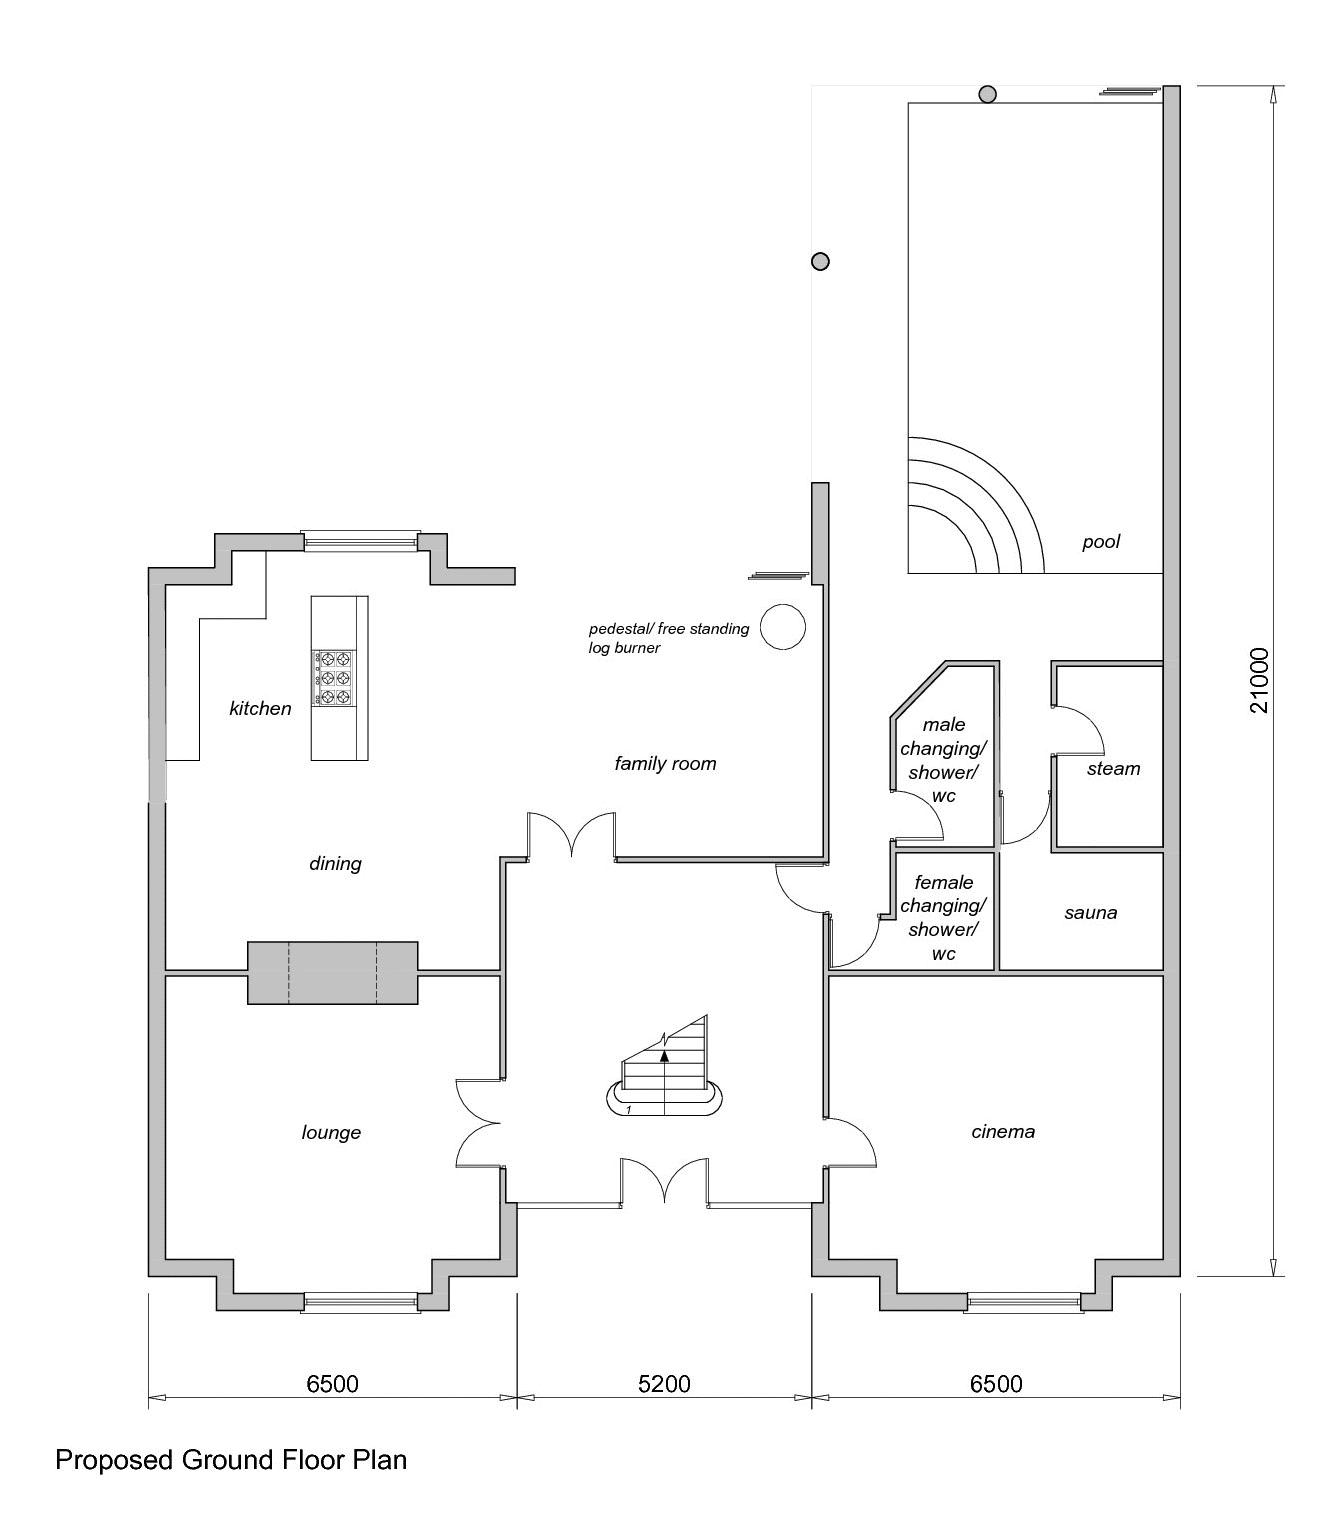 Proposed Ground Floor Plans